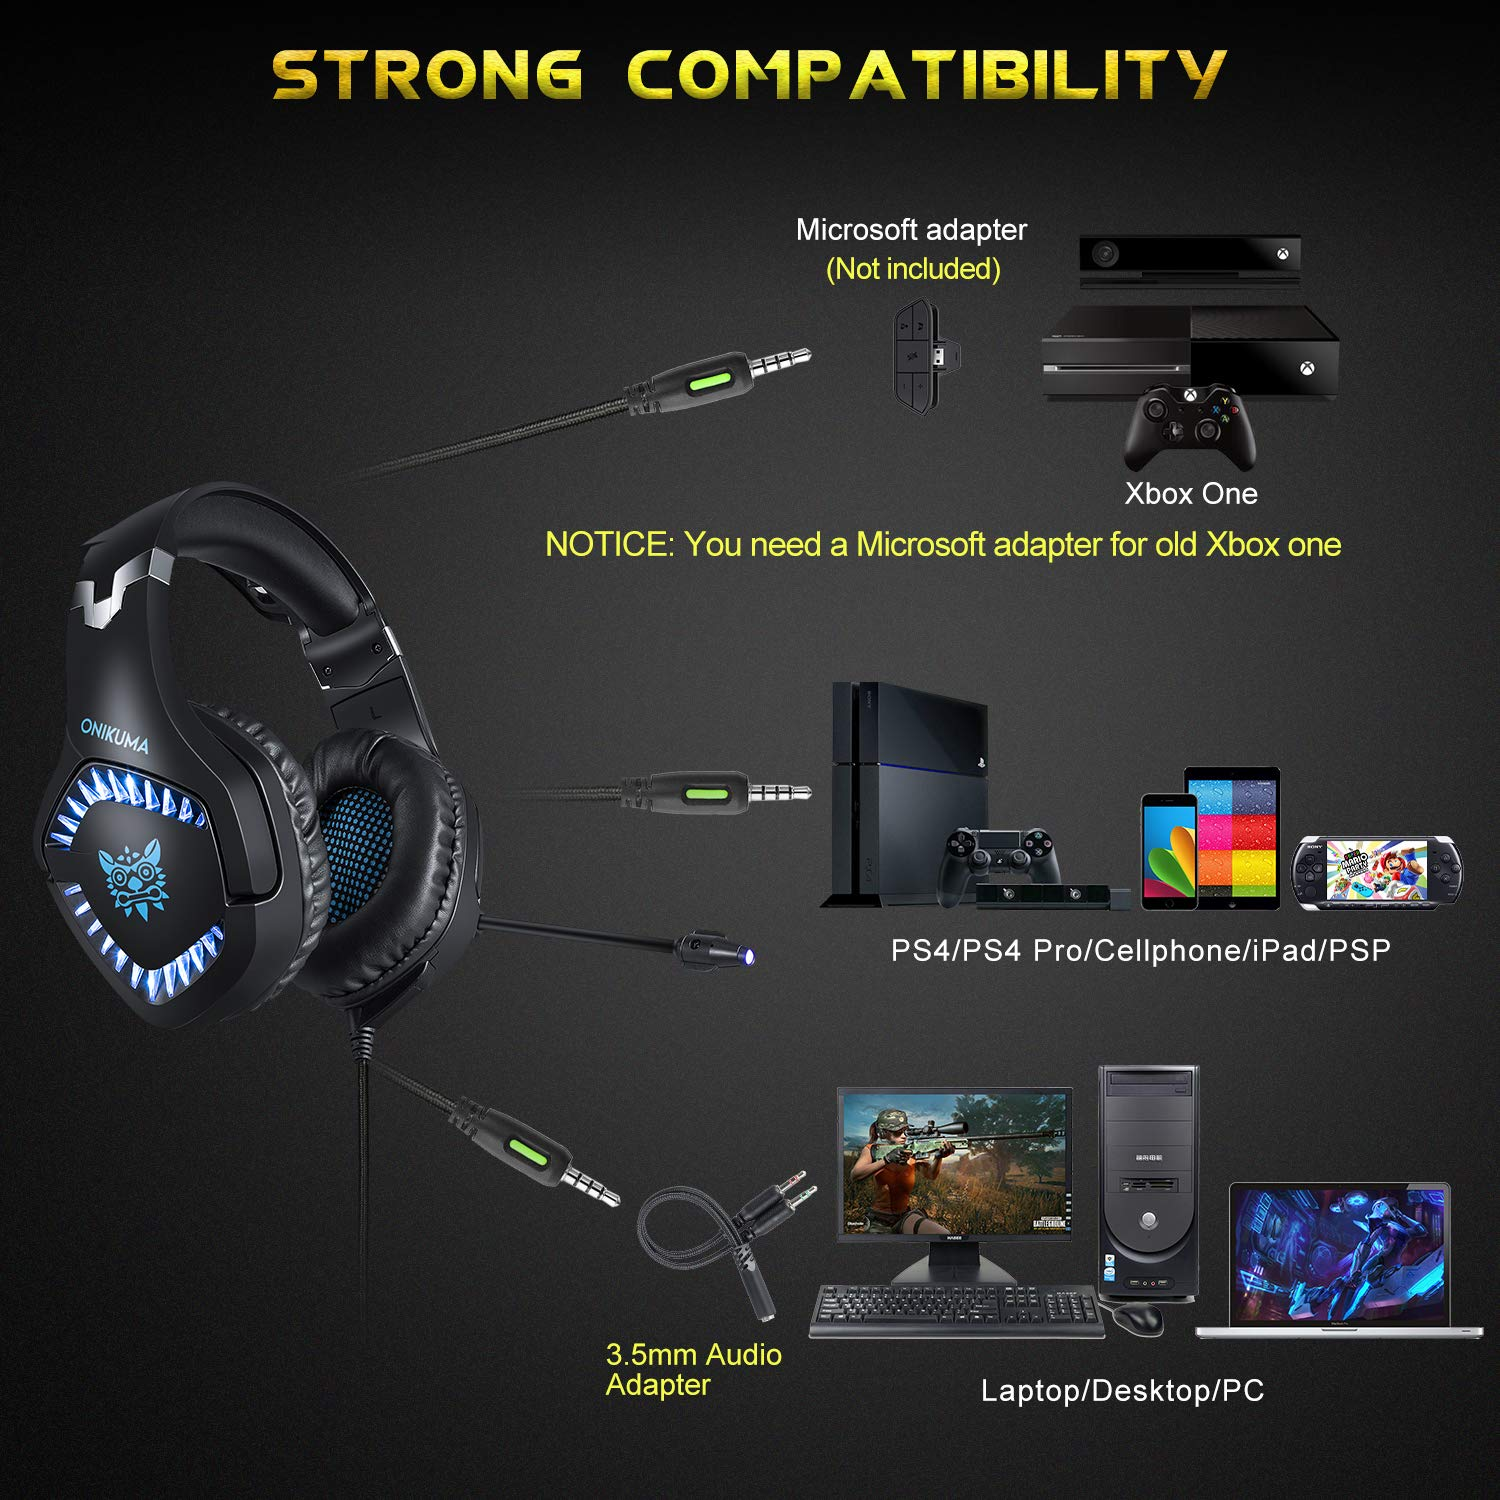 Stereo Gaming Headset, DIOWING,【Upgraded 7.1 Bass Surround Sound】Over Ear Headphones with Mic for PS4, PC, Xbox One Controller, LED Light, Soft Memory Earmuffs for Laptop Mac Nintendo Switch Games by DIOWING (Image #3)